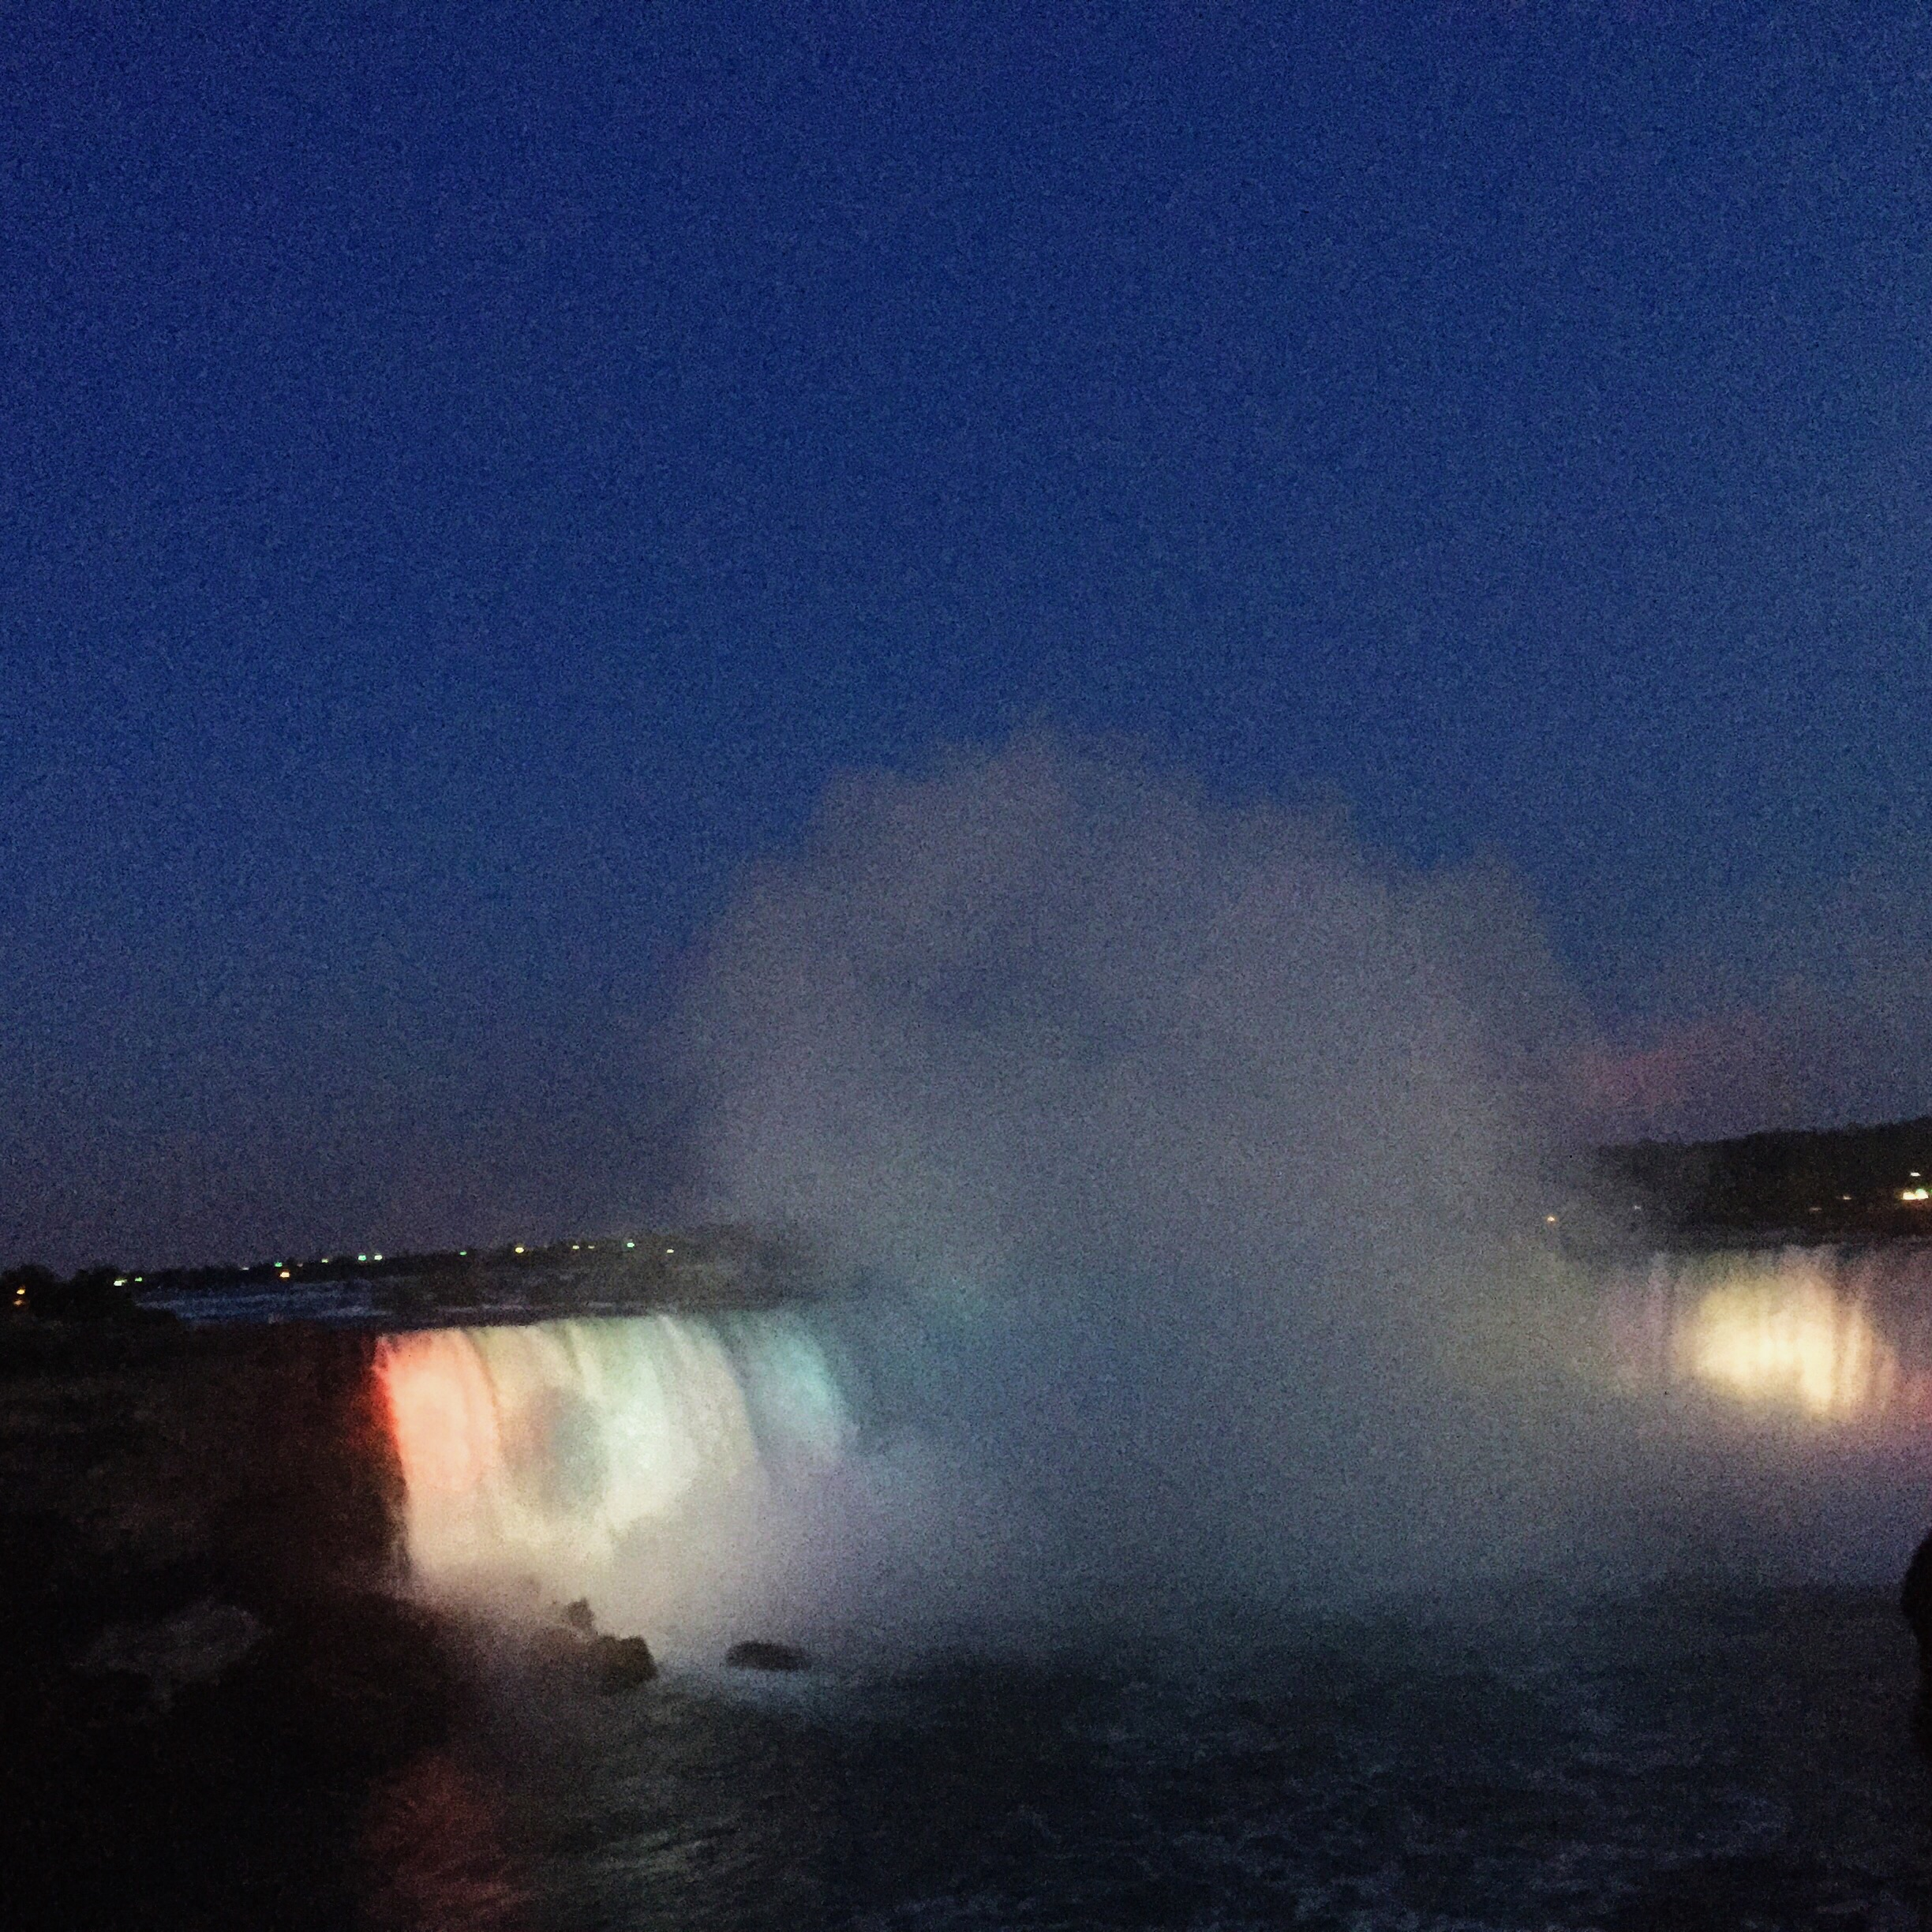 Niagara at night.. Absolutely GORGEOUS! We thought it was going to be dark, apparently they light up with falls with different colors. A must see! But bring your jackets. It's freezing there at night.